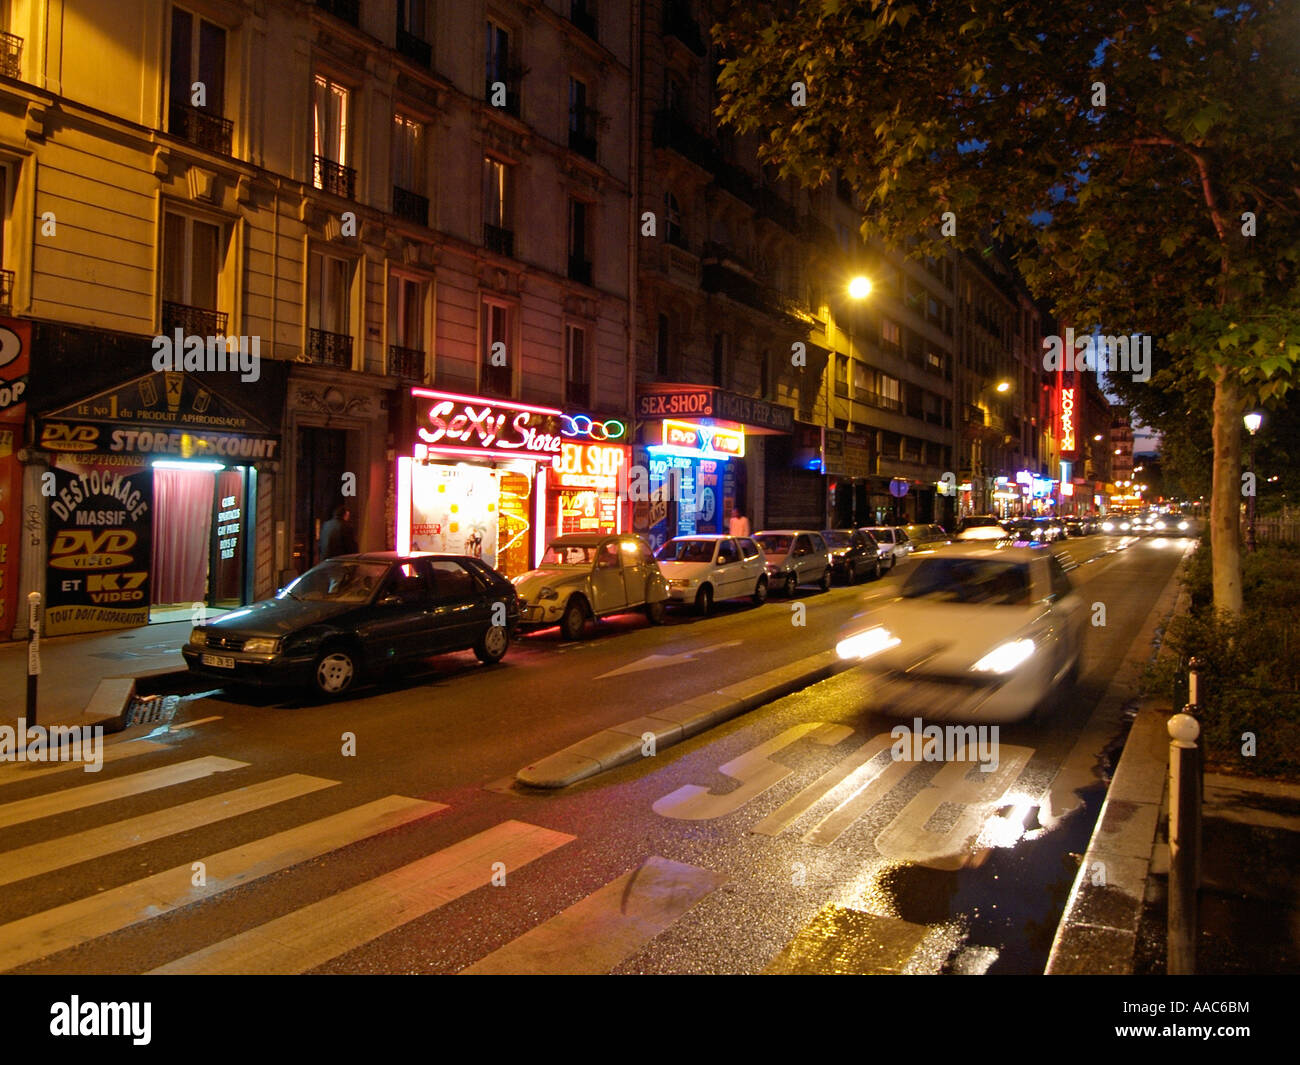 the boulevard de clichy in montmartre paris france has many sex shops stock photo royalty free. Black Bedroom Furniture Sets. Home Design Ideas